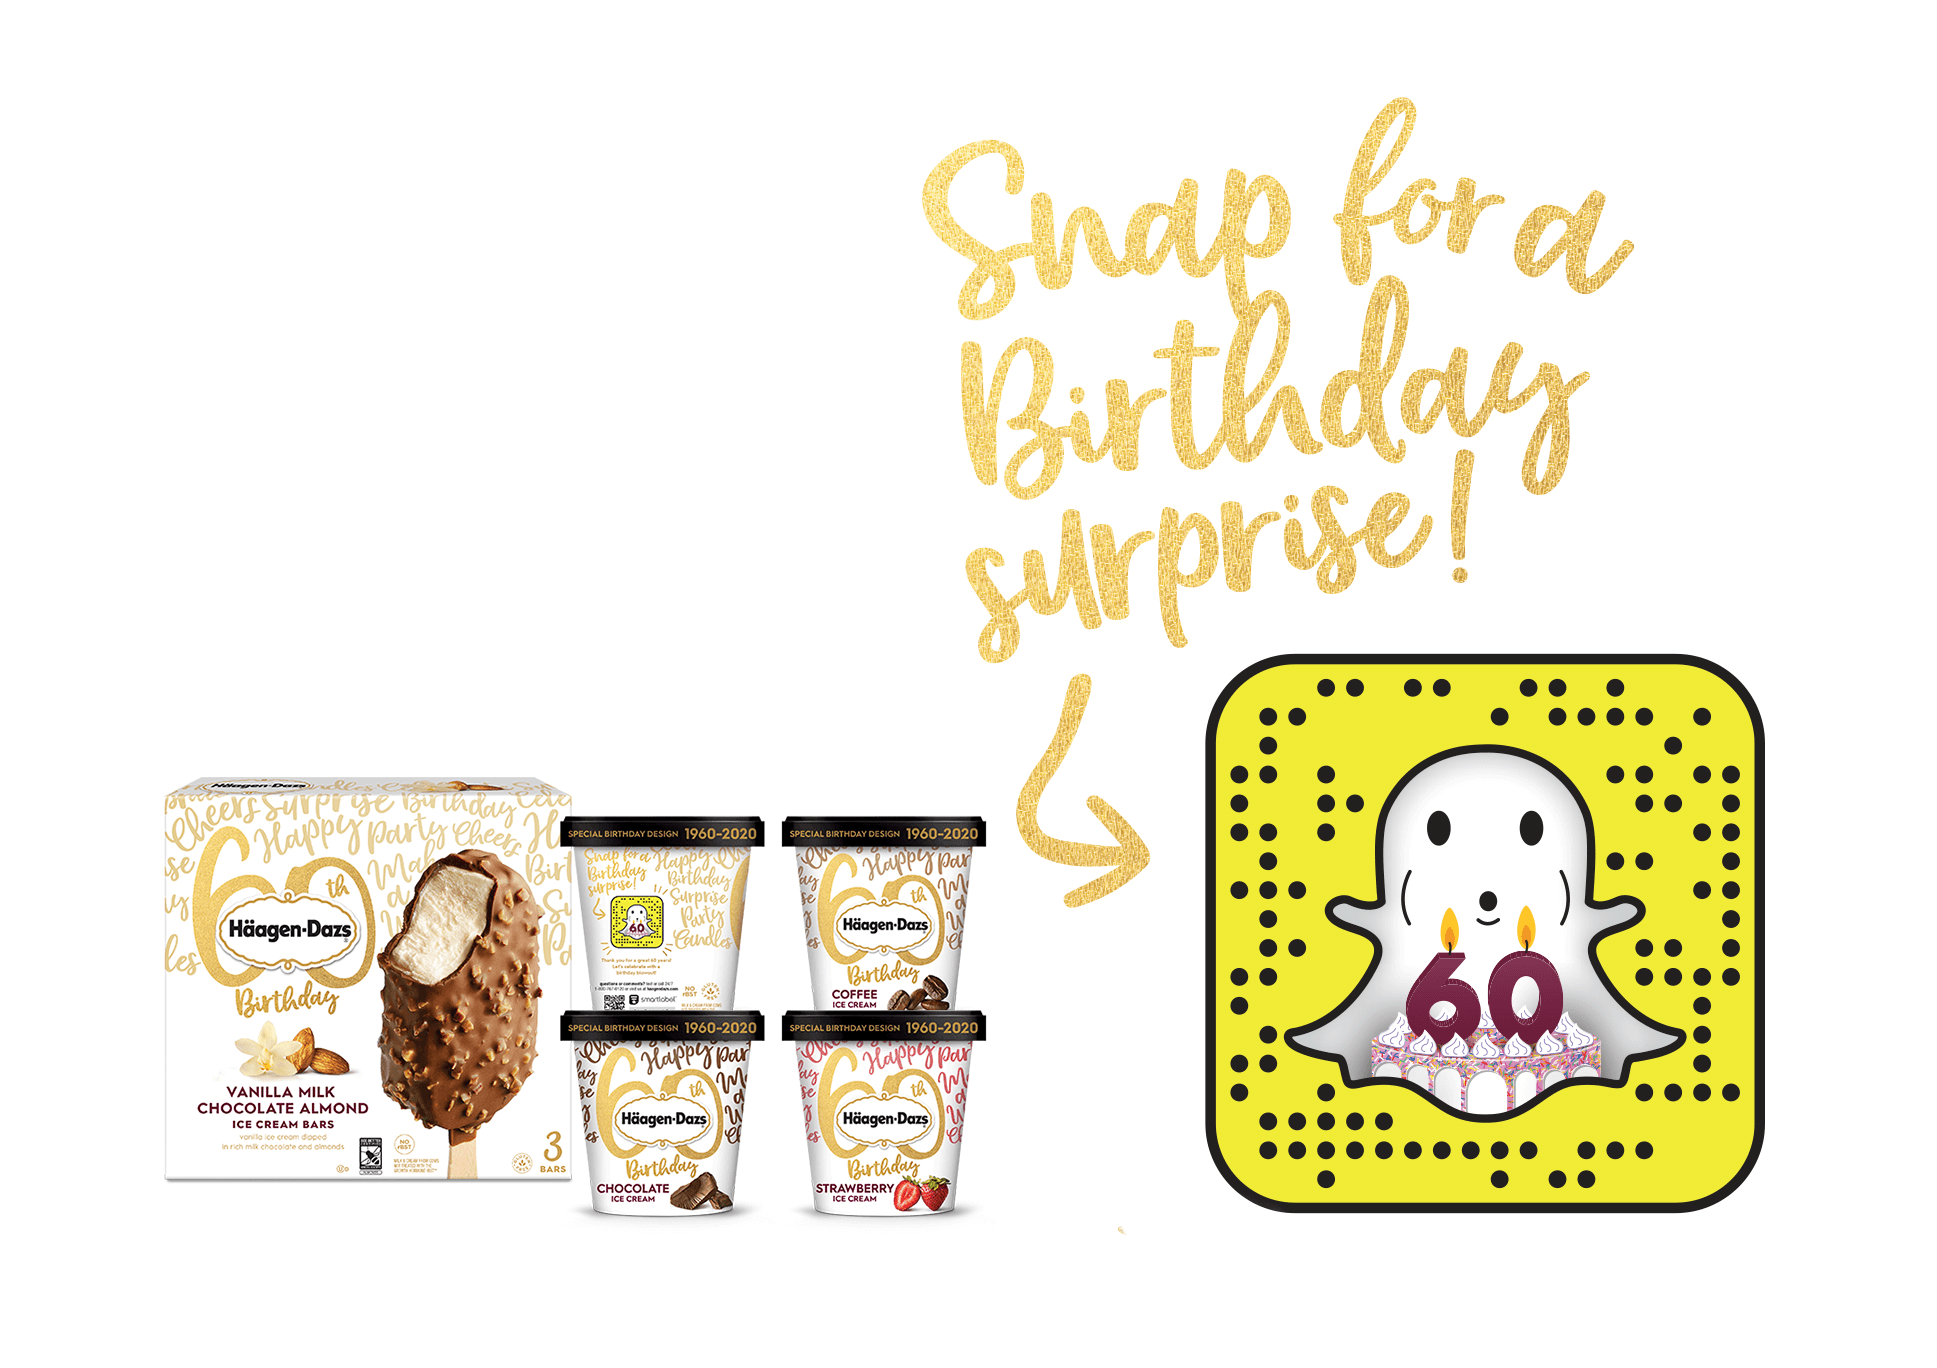 5 different Birthday Edition containers each featured a unique call-to-action to help celebrate and to Snap for an interactive birthday surprise.